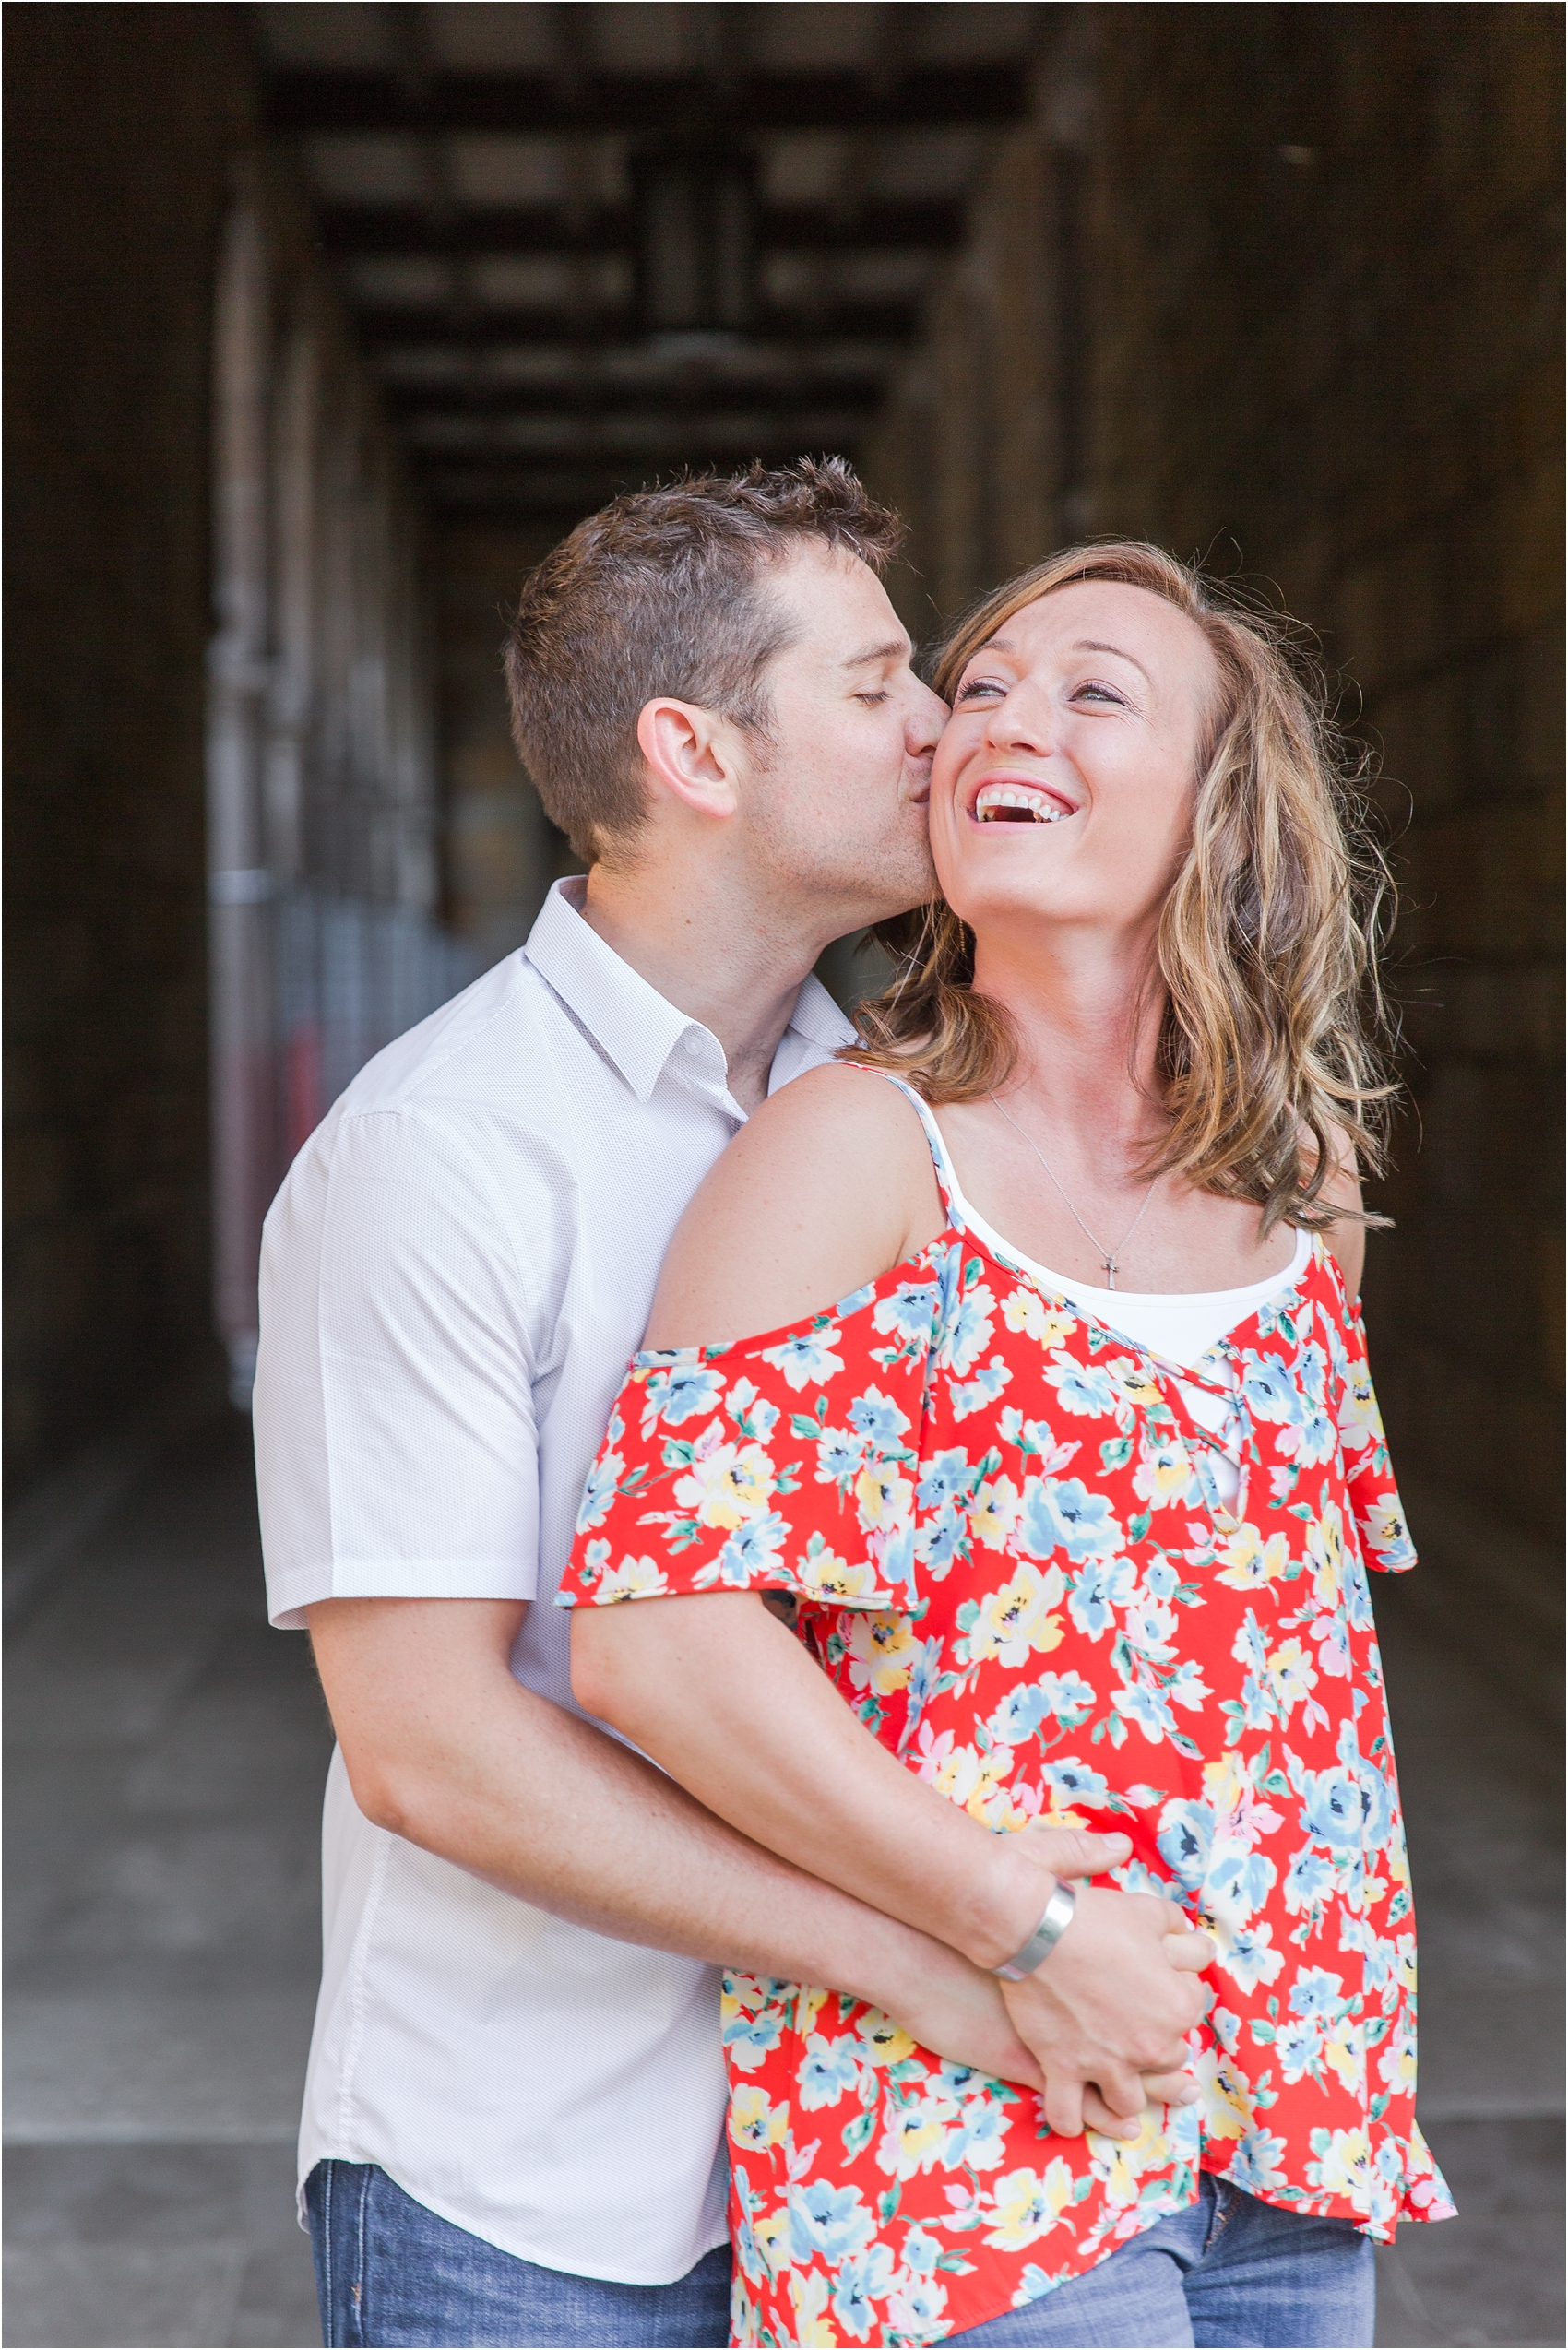 fun-adventurous-engagement-photos-at-the-nickels-arcade-in-ann-arbor-mi-by-courtney-carolyn-photography_0028.jpg